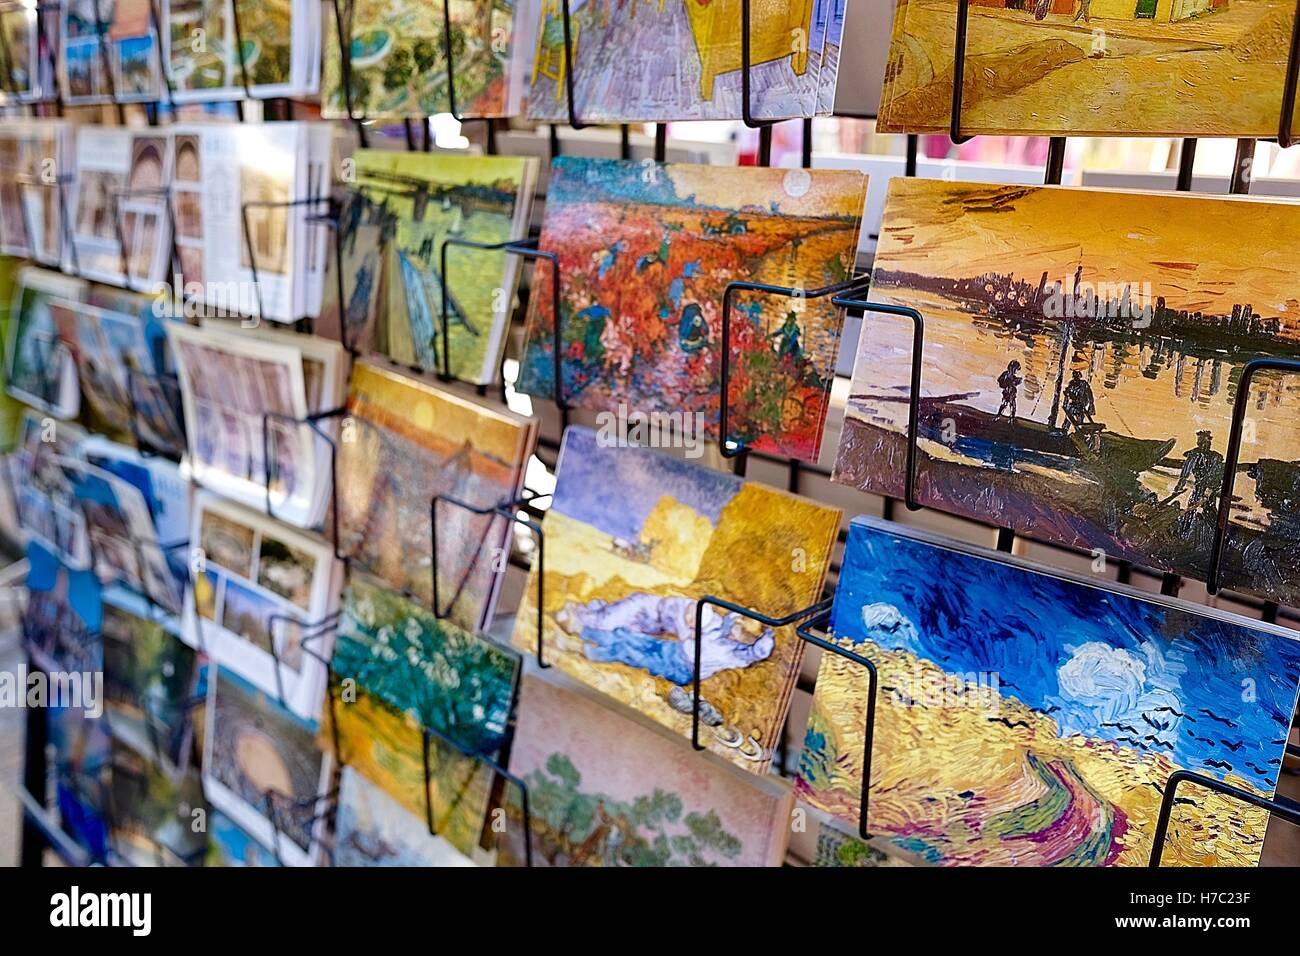 Postcards of Van Gogh paintings in a shop - Stock Image